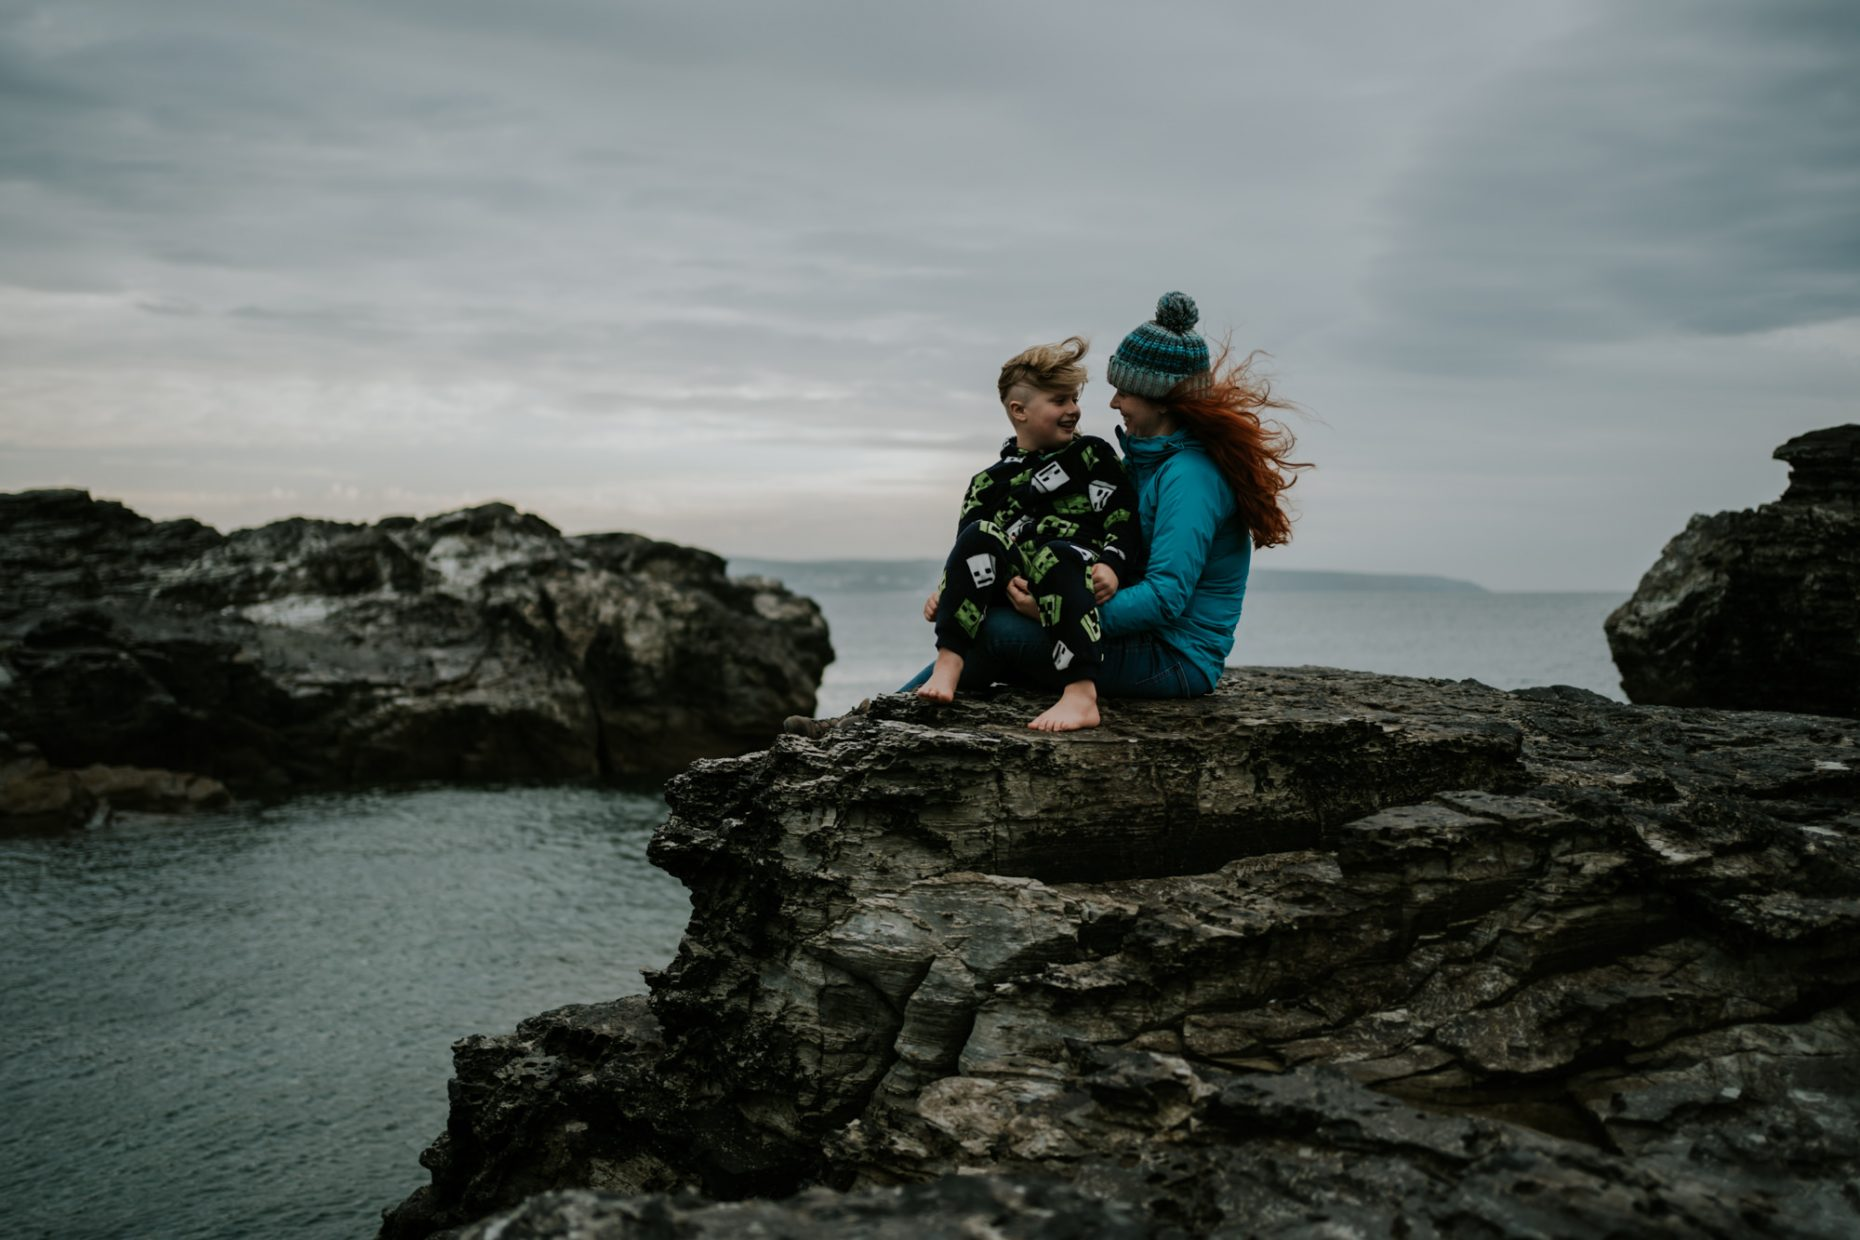 A boy sits on his mothers lap on the edge of a cliff as the wind blows their hair and they laugh together with the sea behind